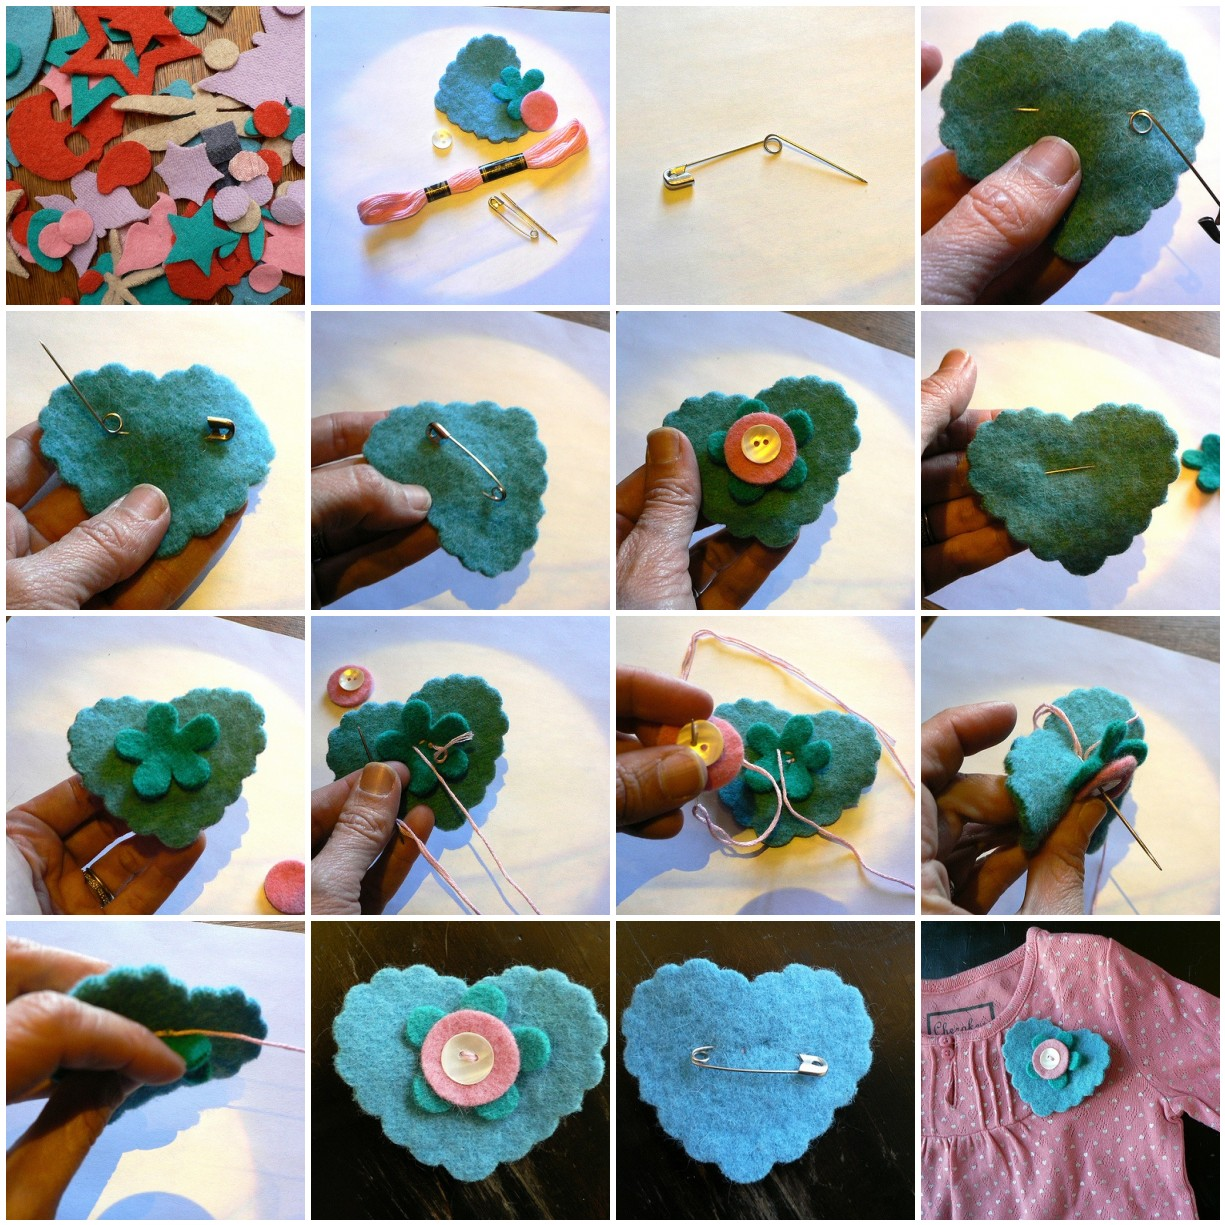 tutorial - Make a Felt Heart/Flower Pin